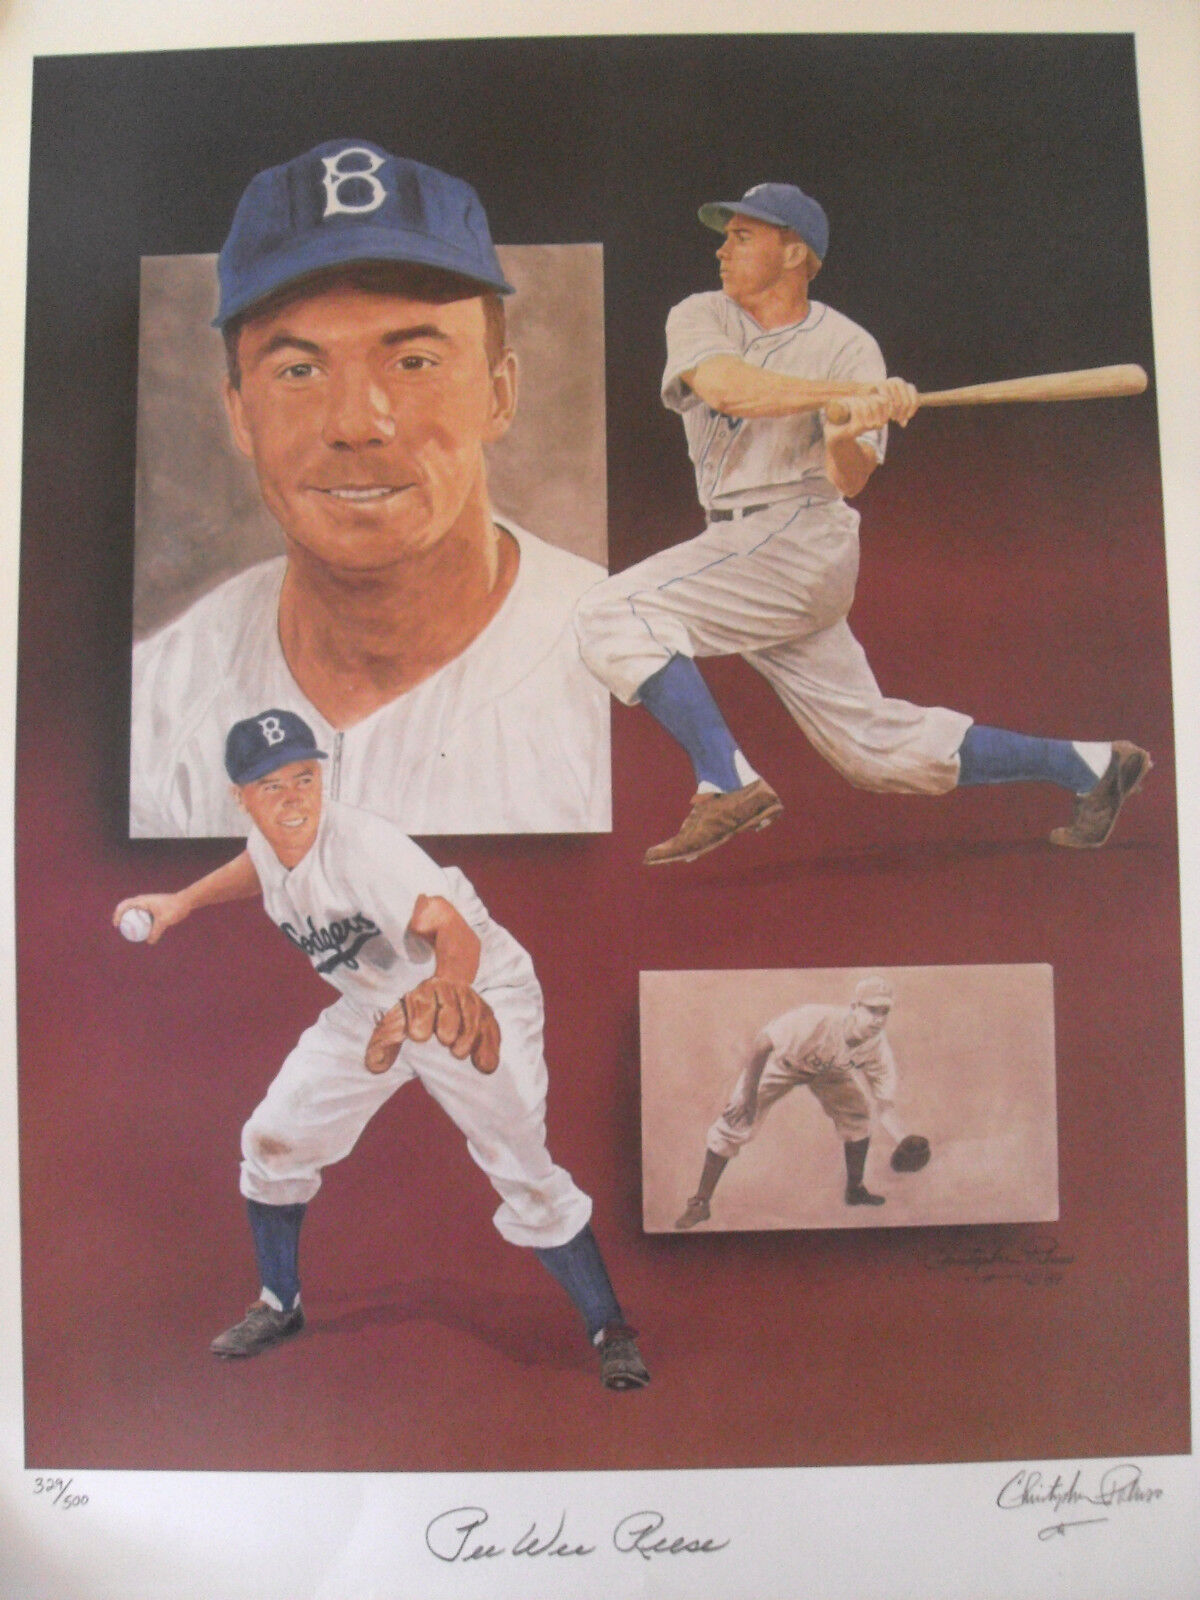 PEE WEE REESE SIGNED LARGE LTD ED PRINT APPROX 18x24